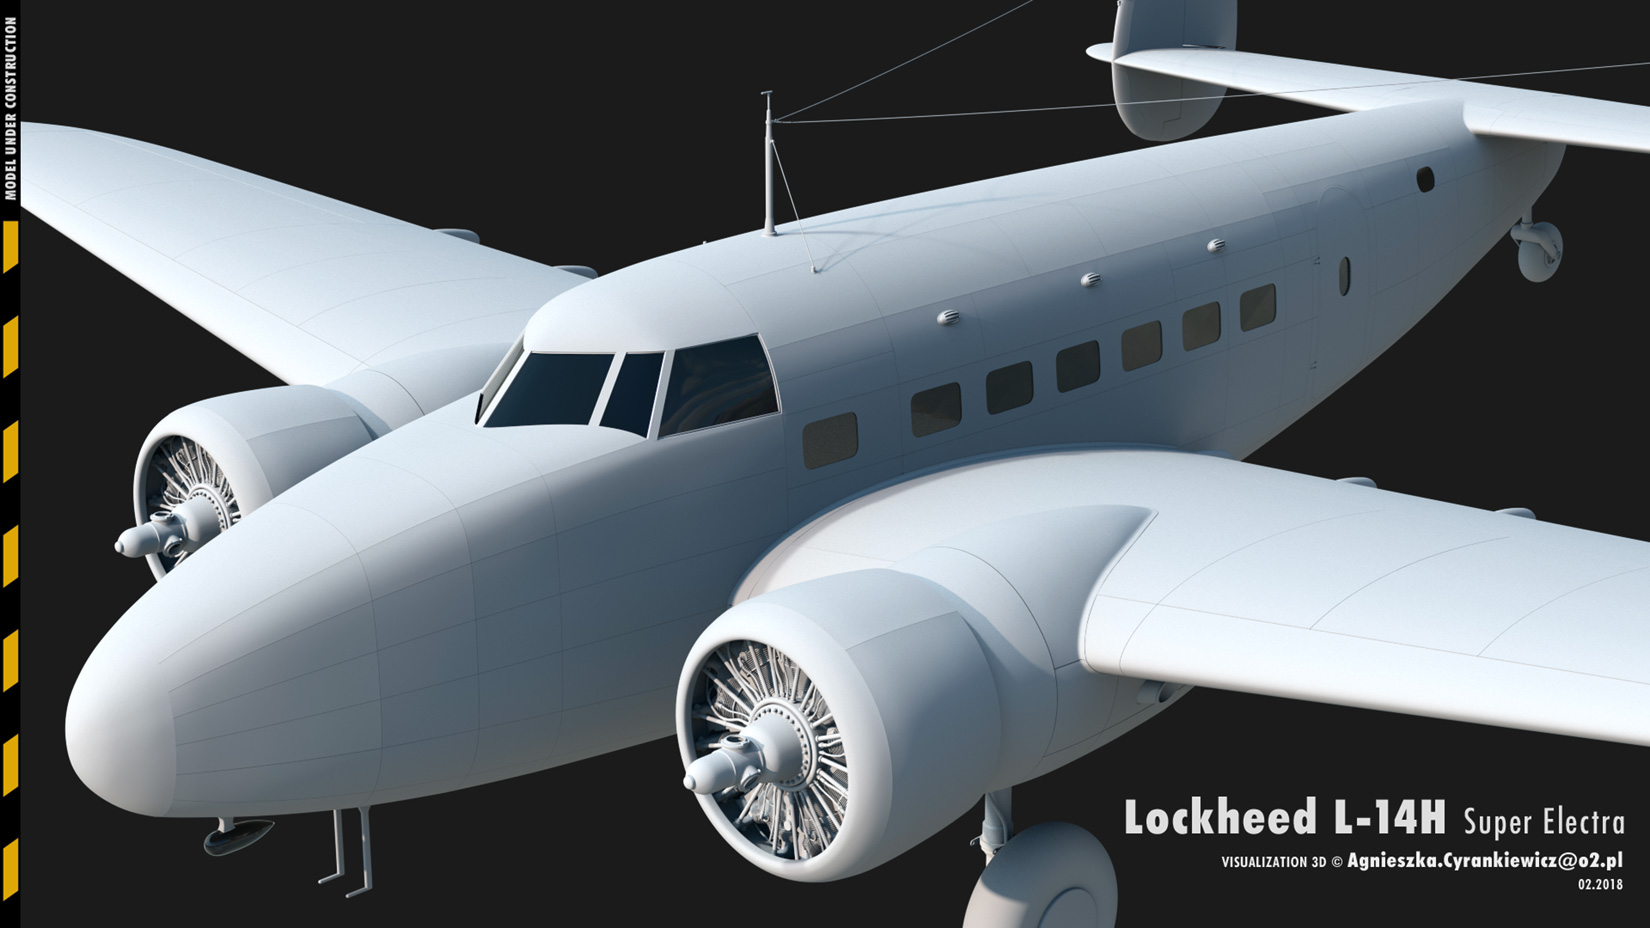 Lockheed Model 14 Super Electra, lockheed hudson, render, 3D, graphics, graphic, Mac Pro